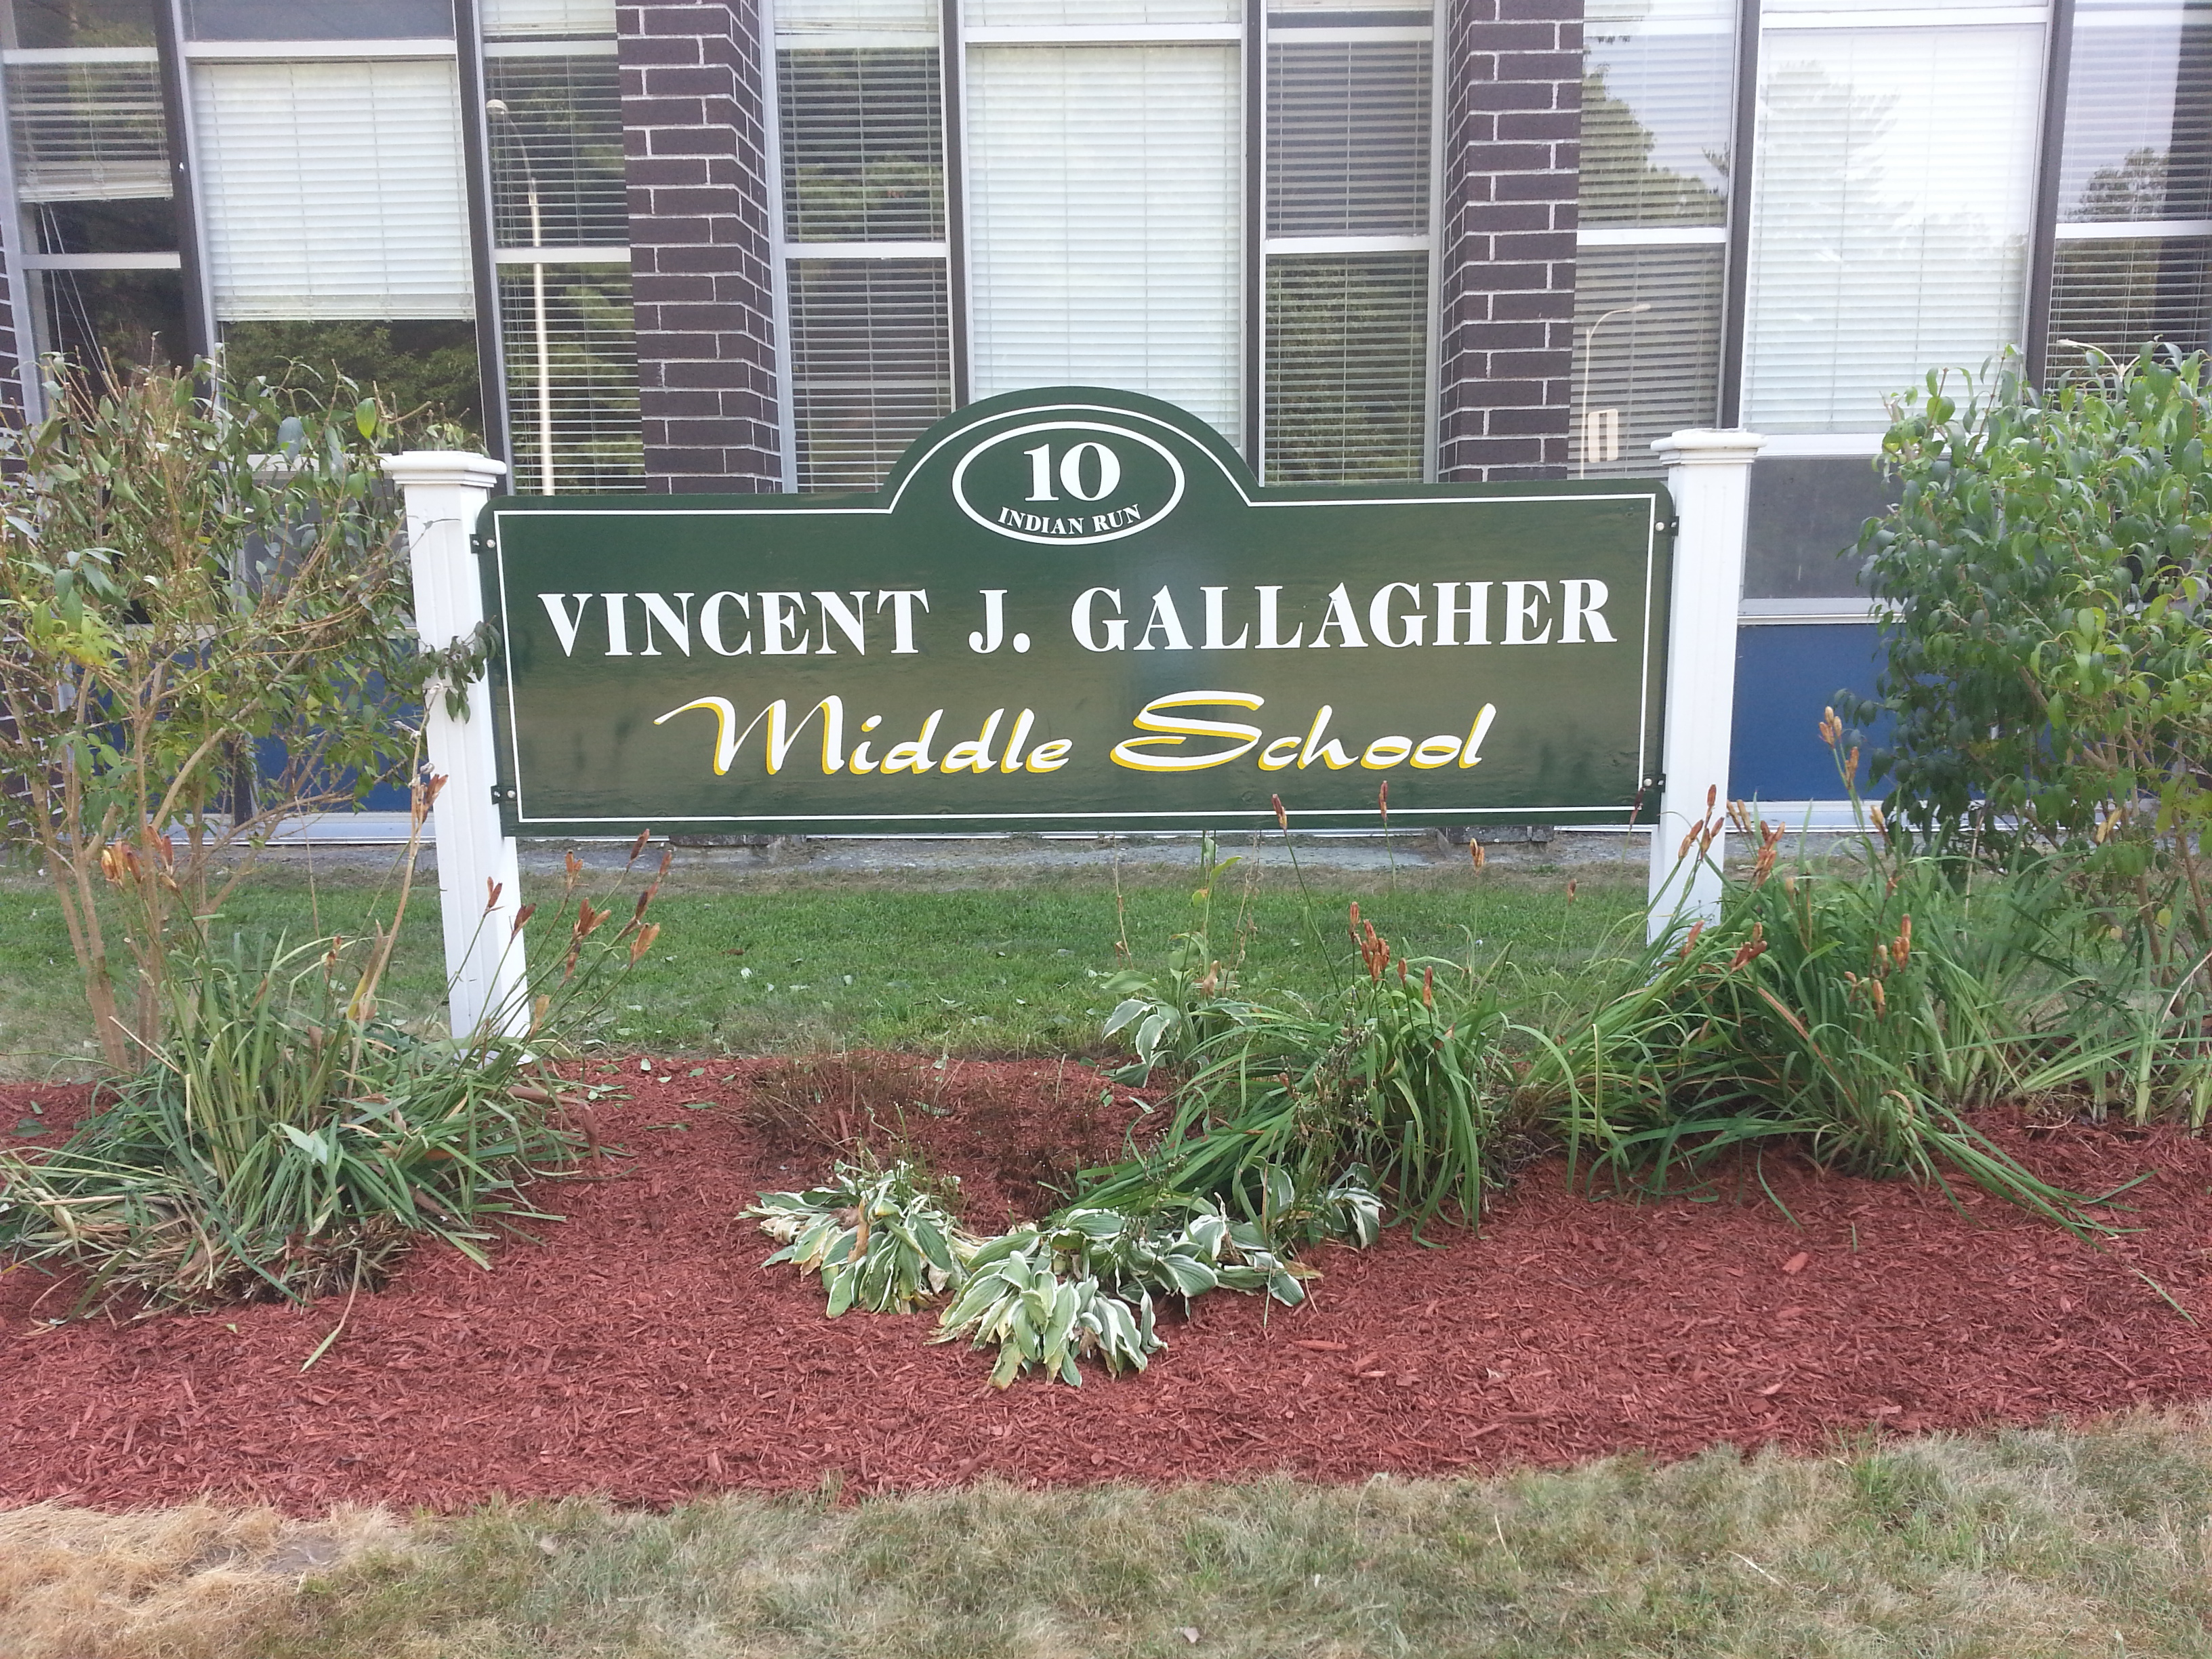 Green sign with white and yellow lettering reading Vincent J. Gallagher Middle School